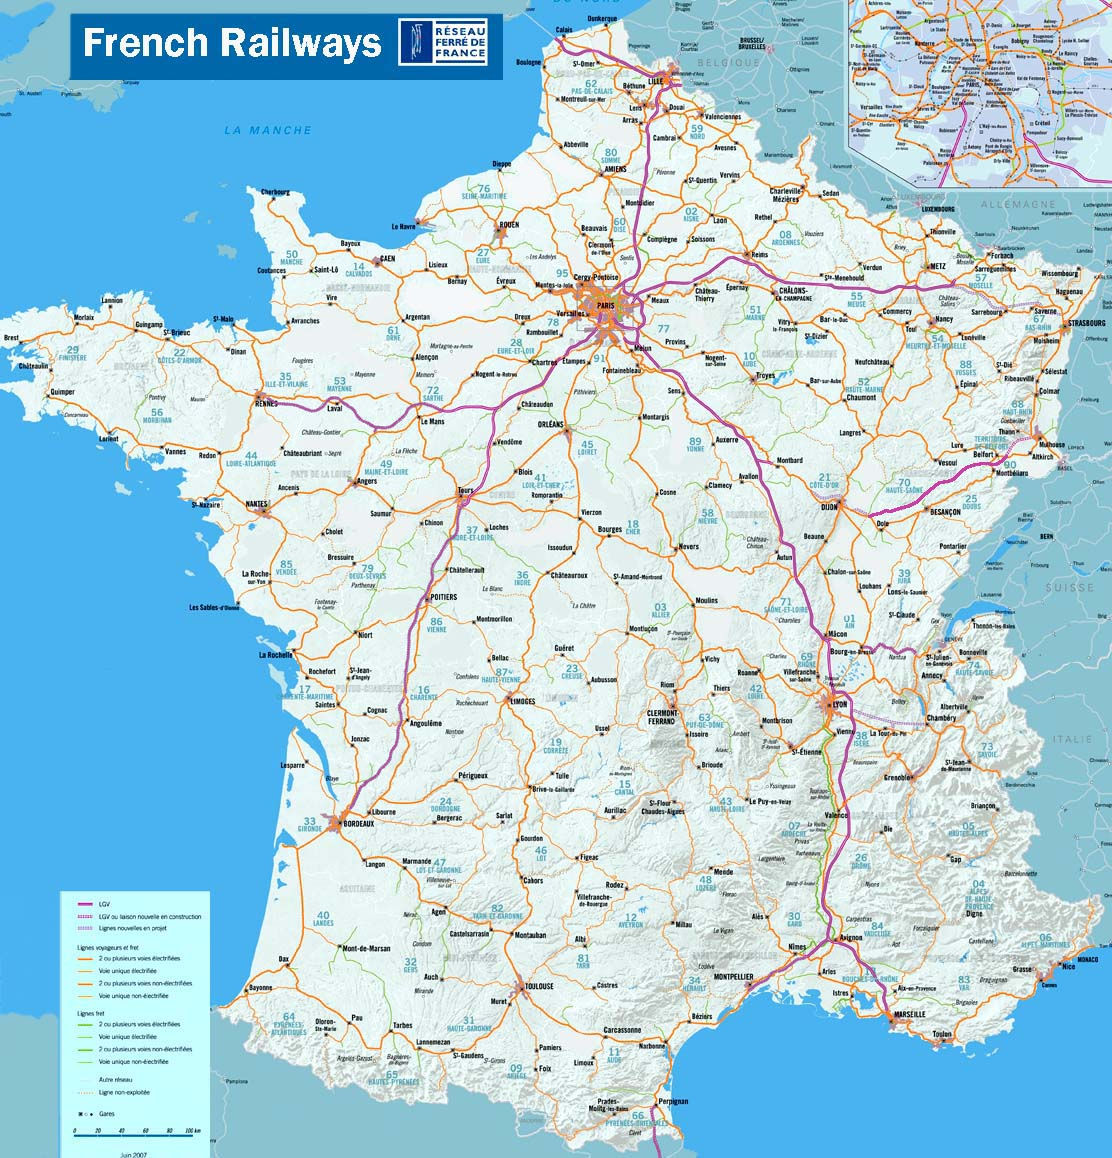 Map Of Trains In France.French Railway Network Map About France Com Travel